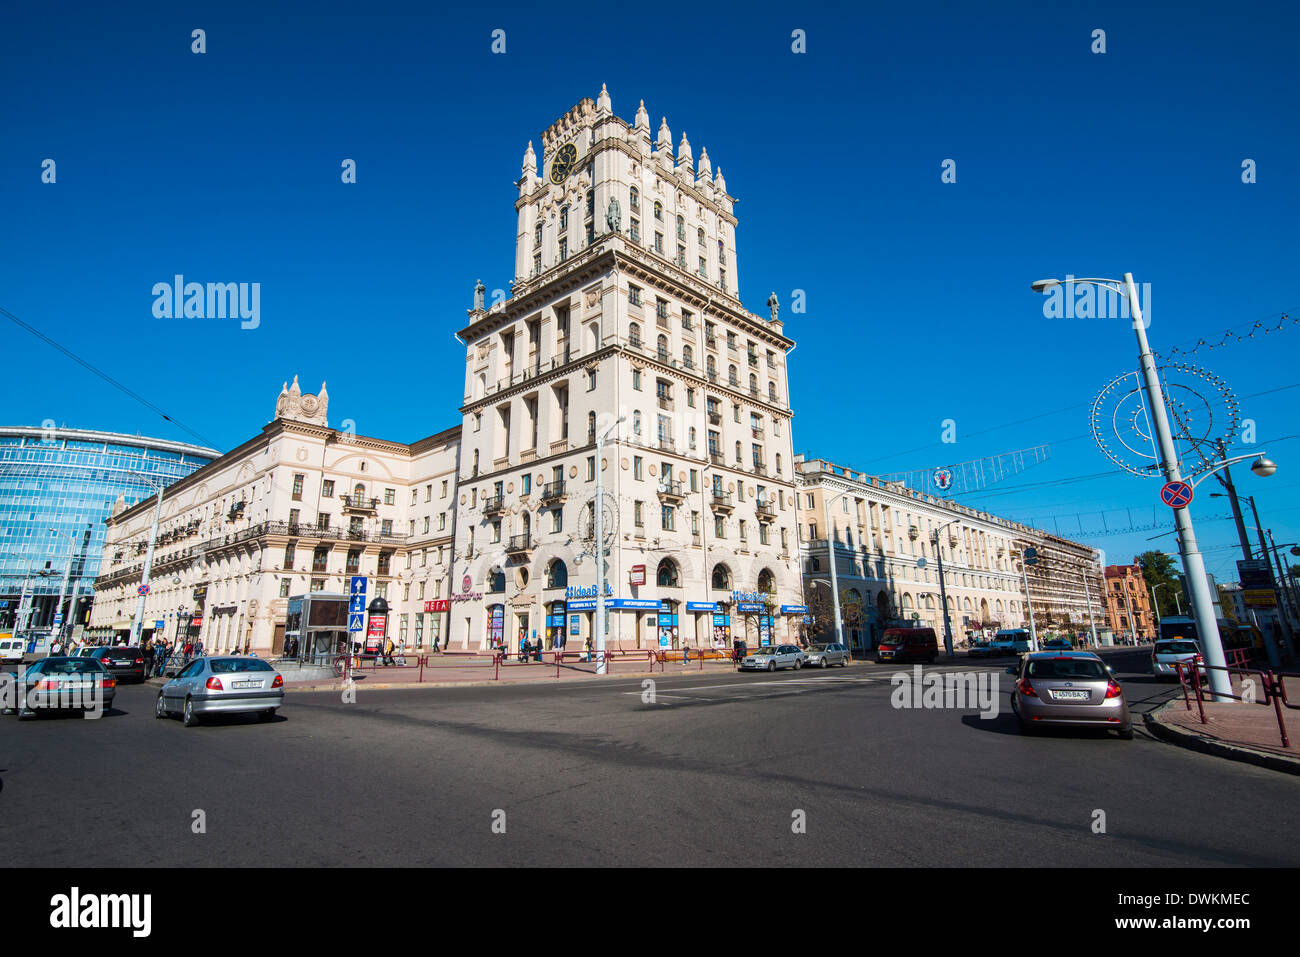 Stalinist architecture in Minsk, Belarus, Europe - Stock Image